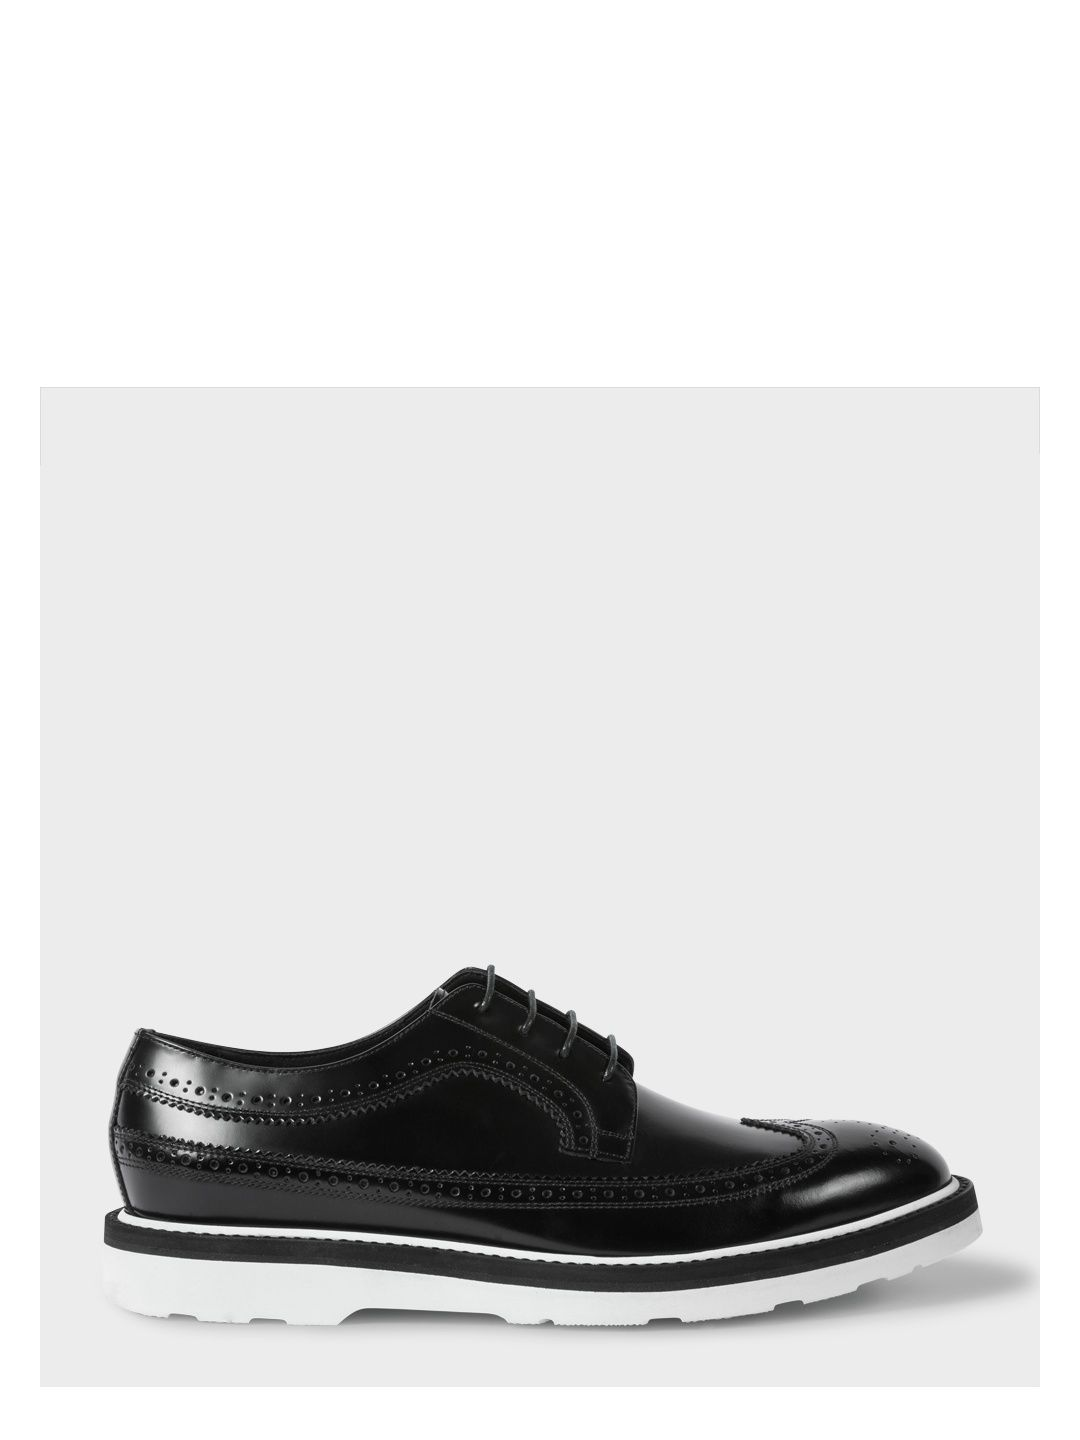 PAUL SMITH Men s Black Leather  Grand  Brogues With White Soles.  paulsmith   shoes   b07aed874